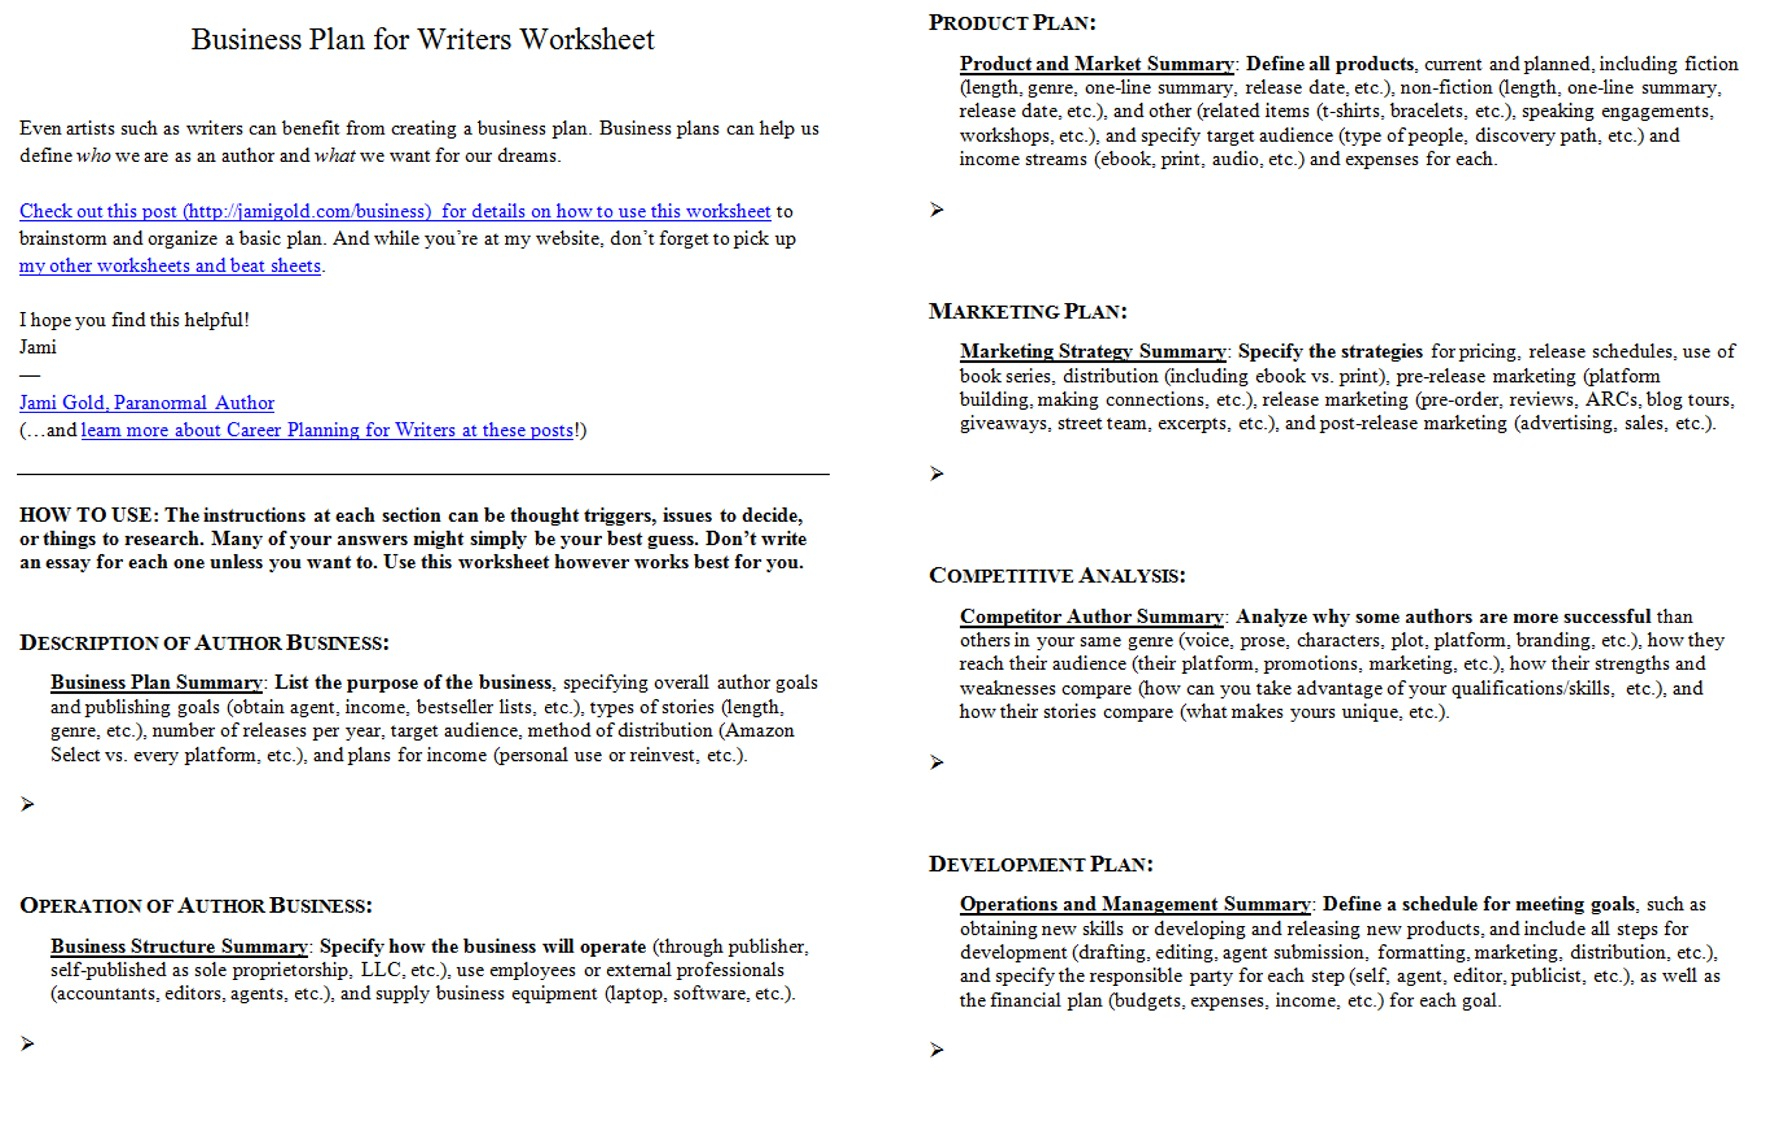 Weirdmailus  Mesmerizing Worksheets For Writers  Jami Gold Paranormal Author With Hot Screen Shot Of Both Pages Of The Business Plan For Writers Worksheet With Delectable Worksheets For Grade  Writing Also Gene Mutation Worksheet In Addition Preposition In On Under Worksheets And Math Worksheet Nd Grade As Well As Thoughts And Feelings Worksheets For Children Additionally Olympic Games Worksheets From Jamigoldcom With Weirdmailus  Hot Worksheets For Writers  Jami Gold Paranormal Author With Delectable Screen Shot Of Both Pages Of The Business Plan For Writers Worksheet And Mesmerizing Worksheets For Grade  Writing Also Gene Mutation Worksheet In Addition Preposition In On Under Worksheets From Jamigoldcom